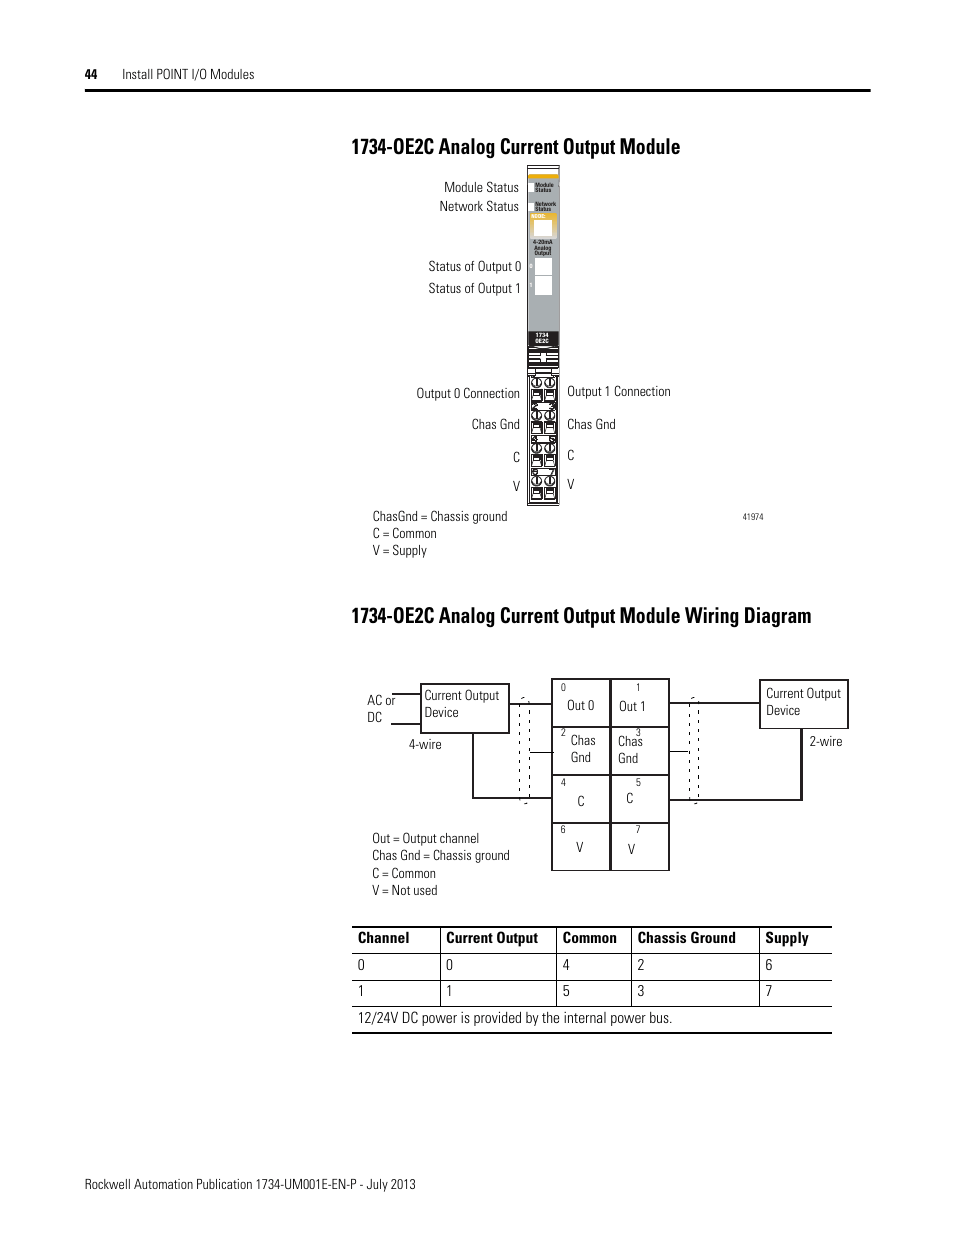 hight resolution of 1734 oe2c analog current output module rockwell automation 1734 xxxx point i o digital and analog modules and pointblock i o modules user manual page 60